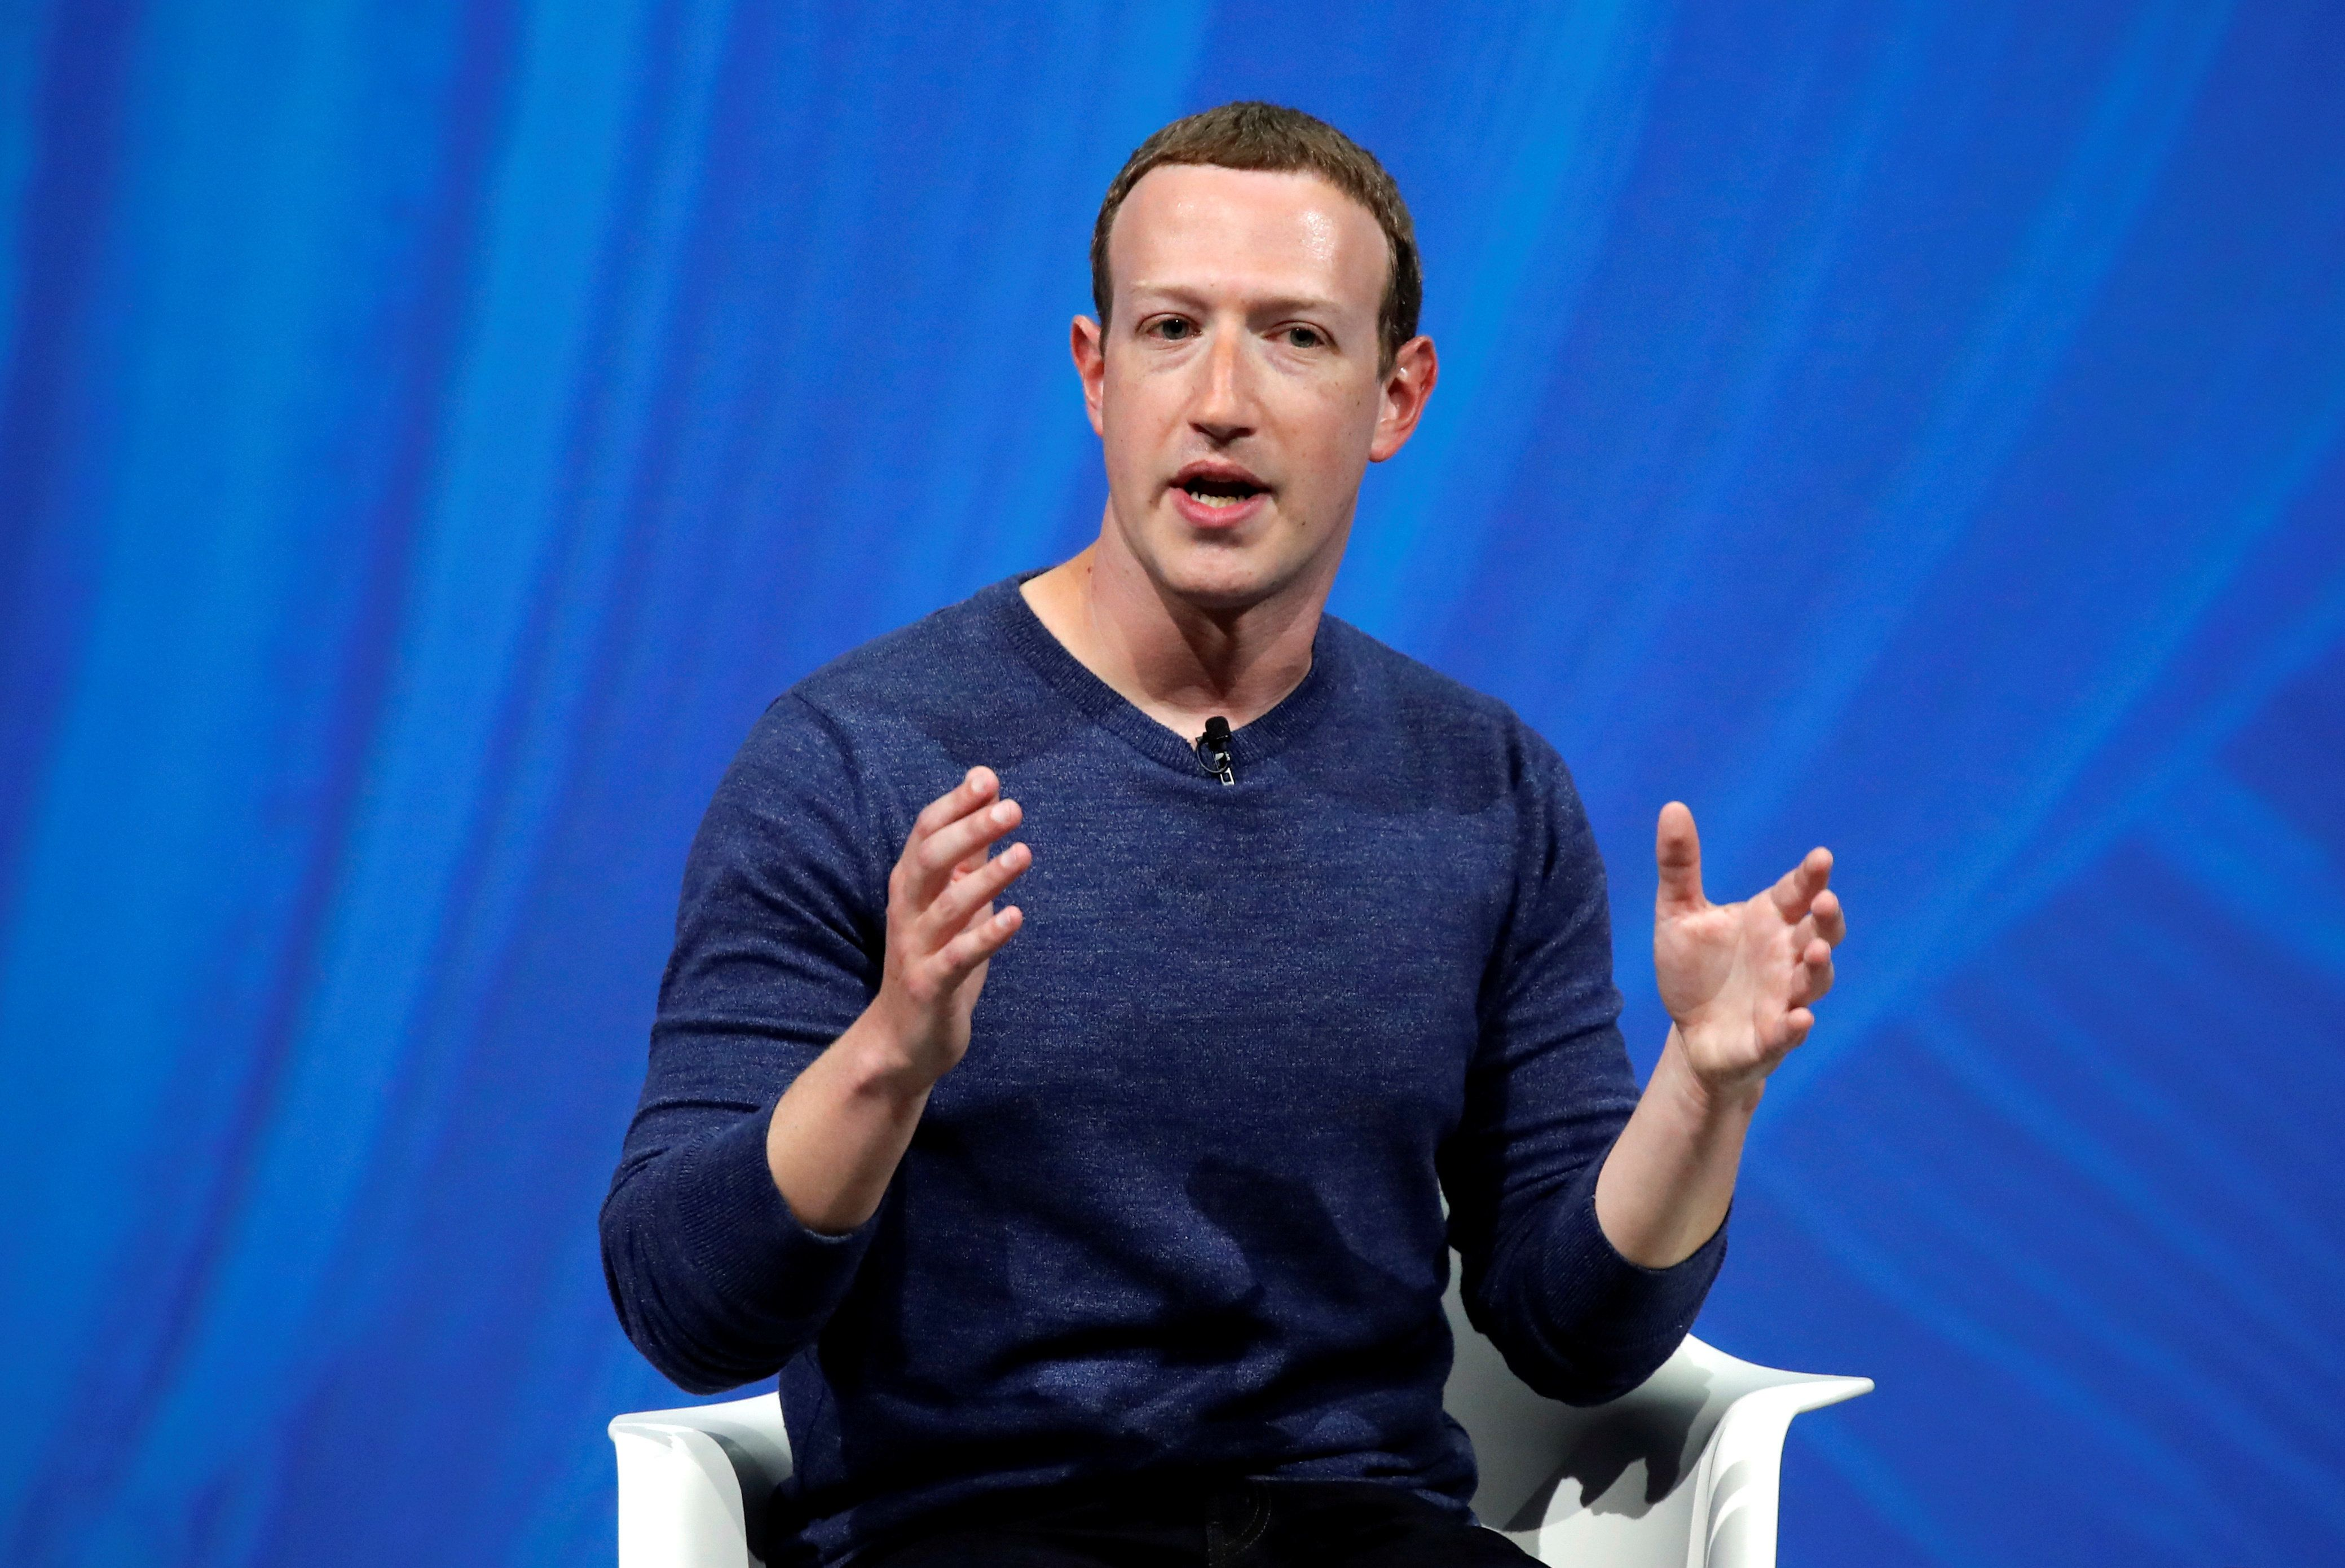 Facebook's founder and CEO Mark Zuckerberg speaks at the Viva Tech start-up and technology summit in Paris, France, May 24, 2018. REUTERS/Charles Platiau